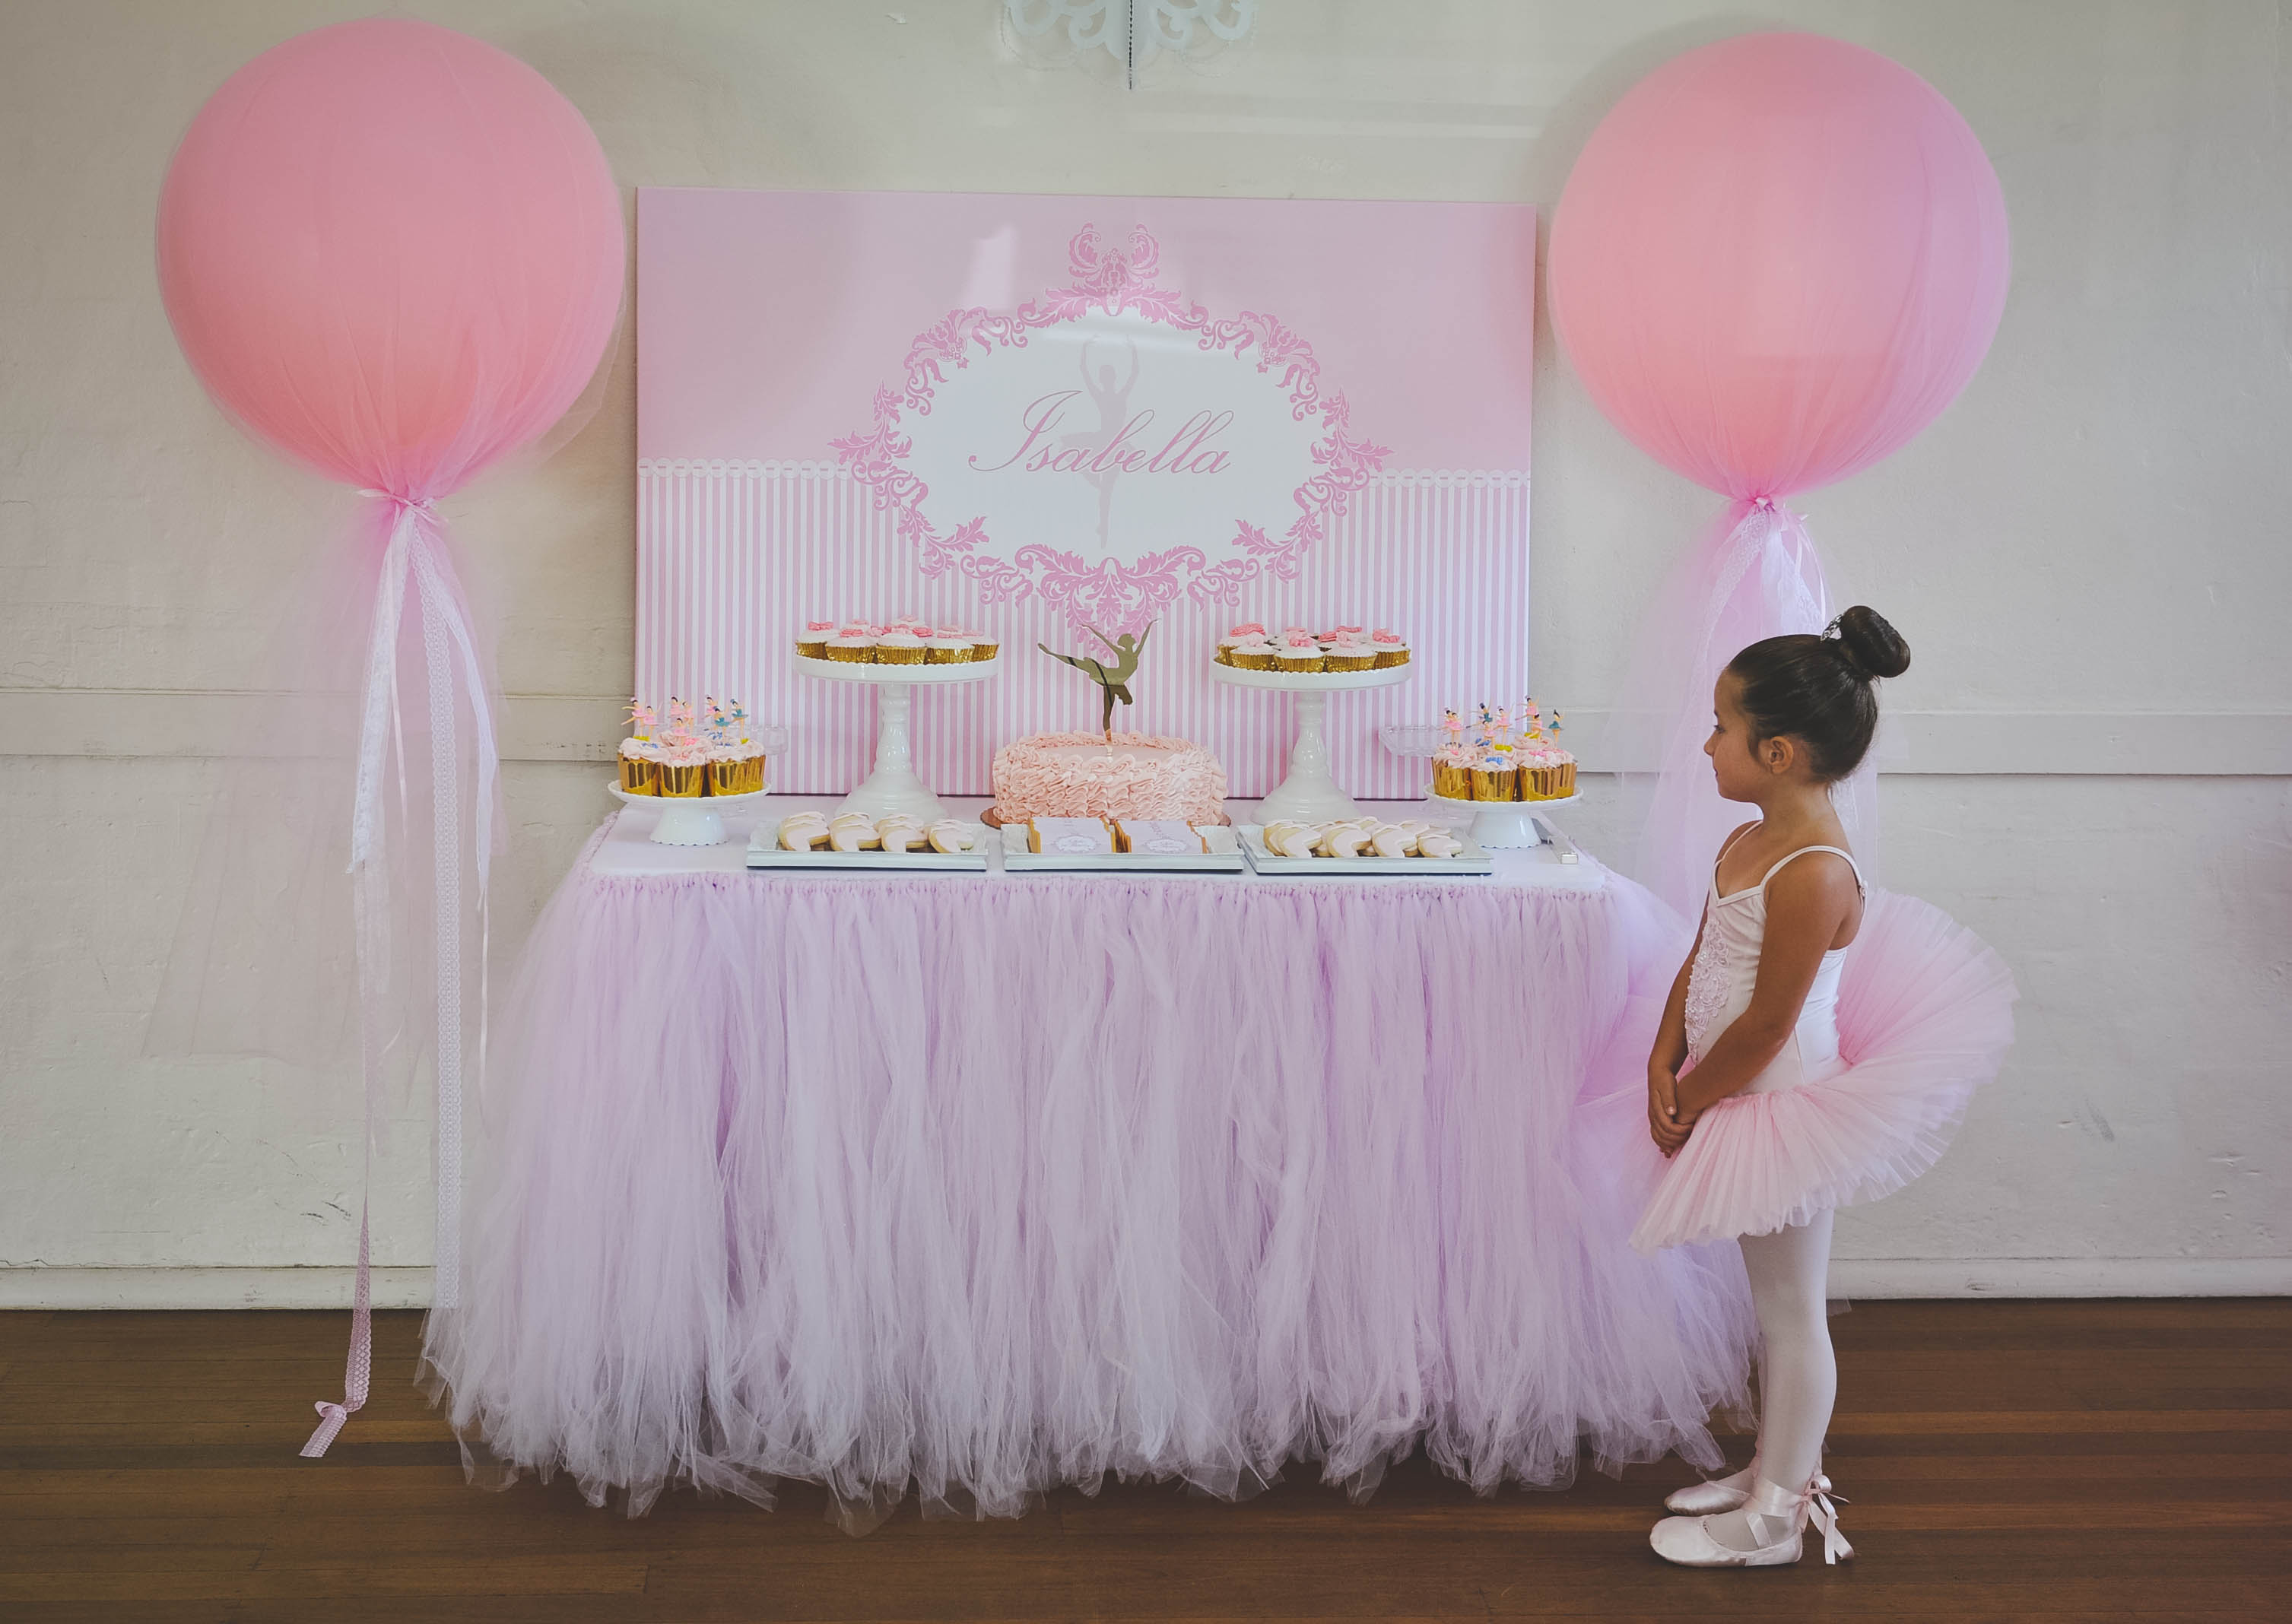 Homemade ballet party dessert table